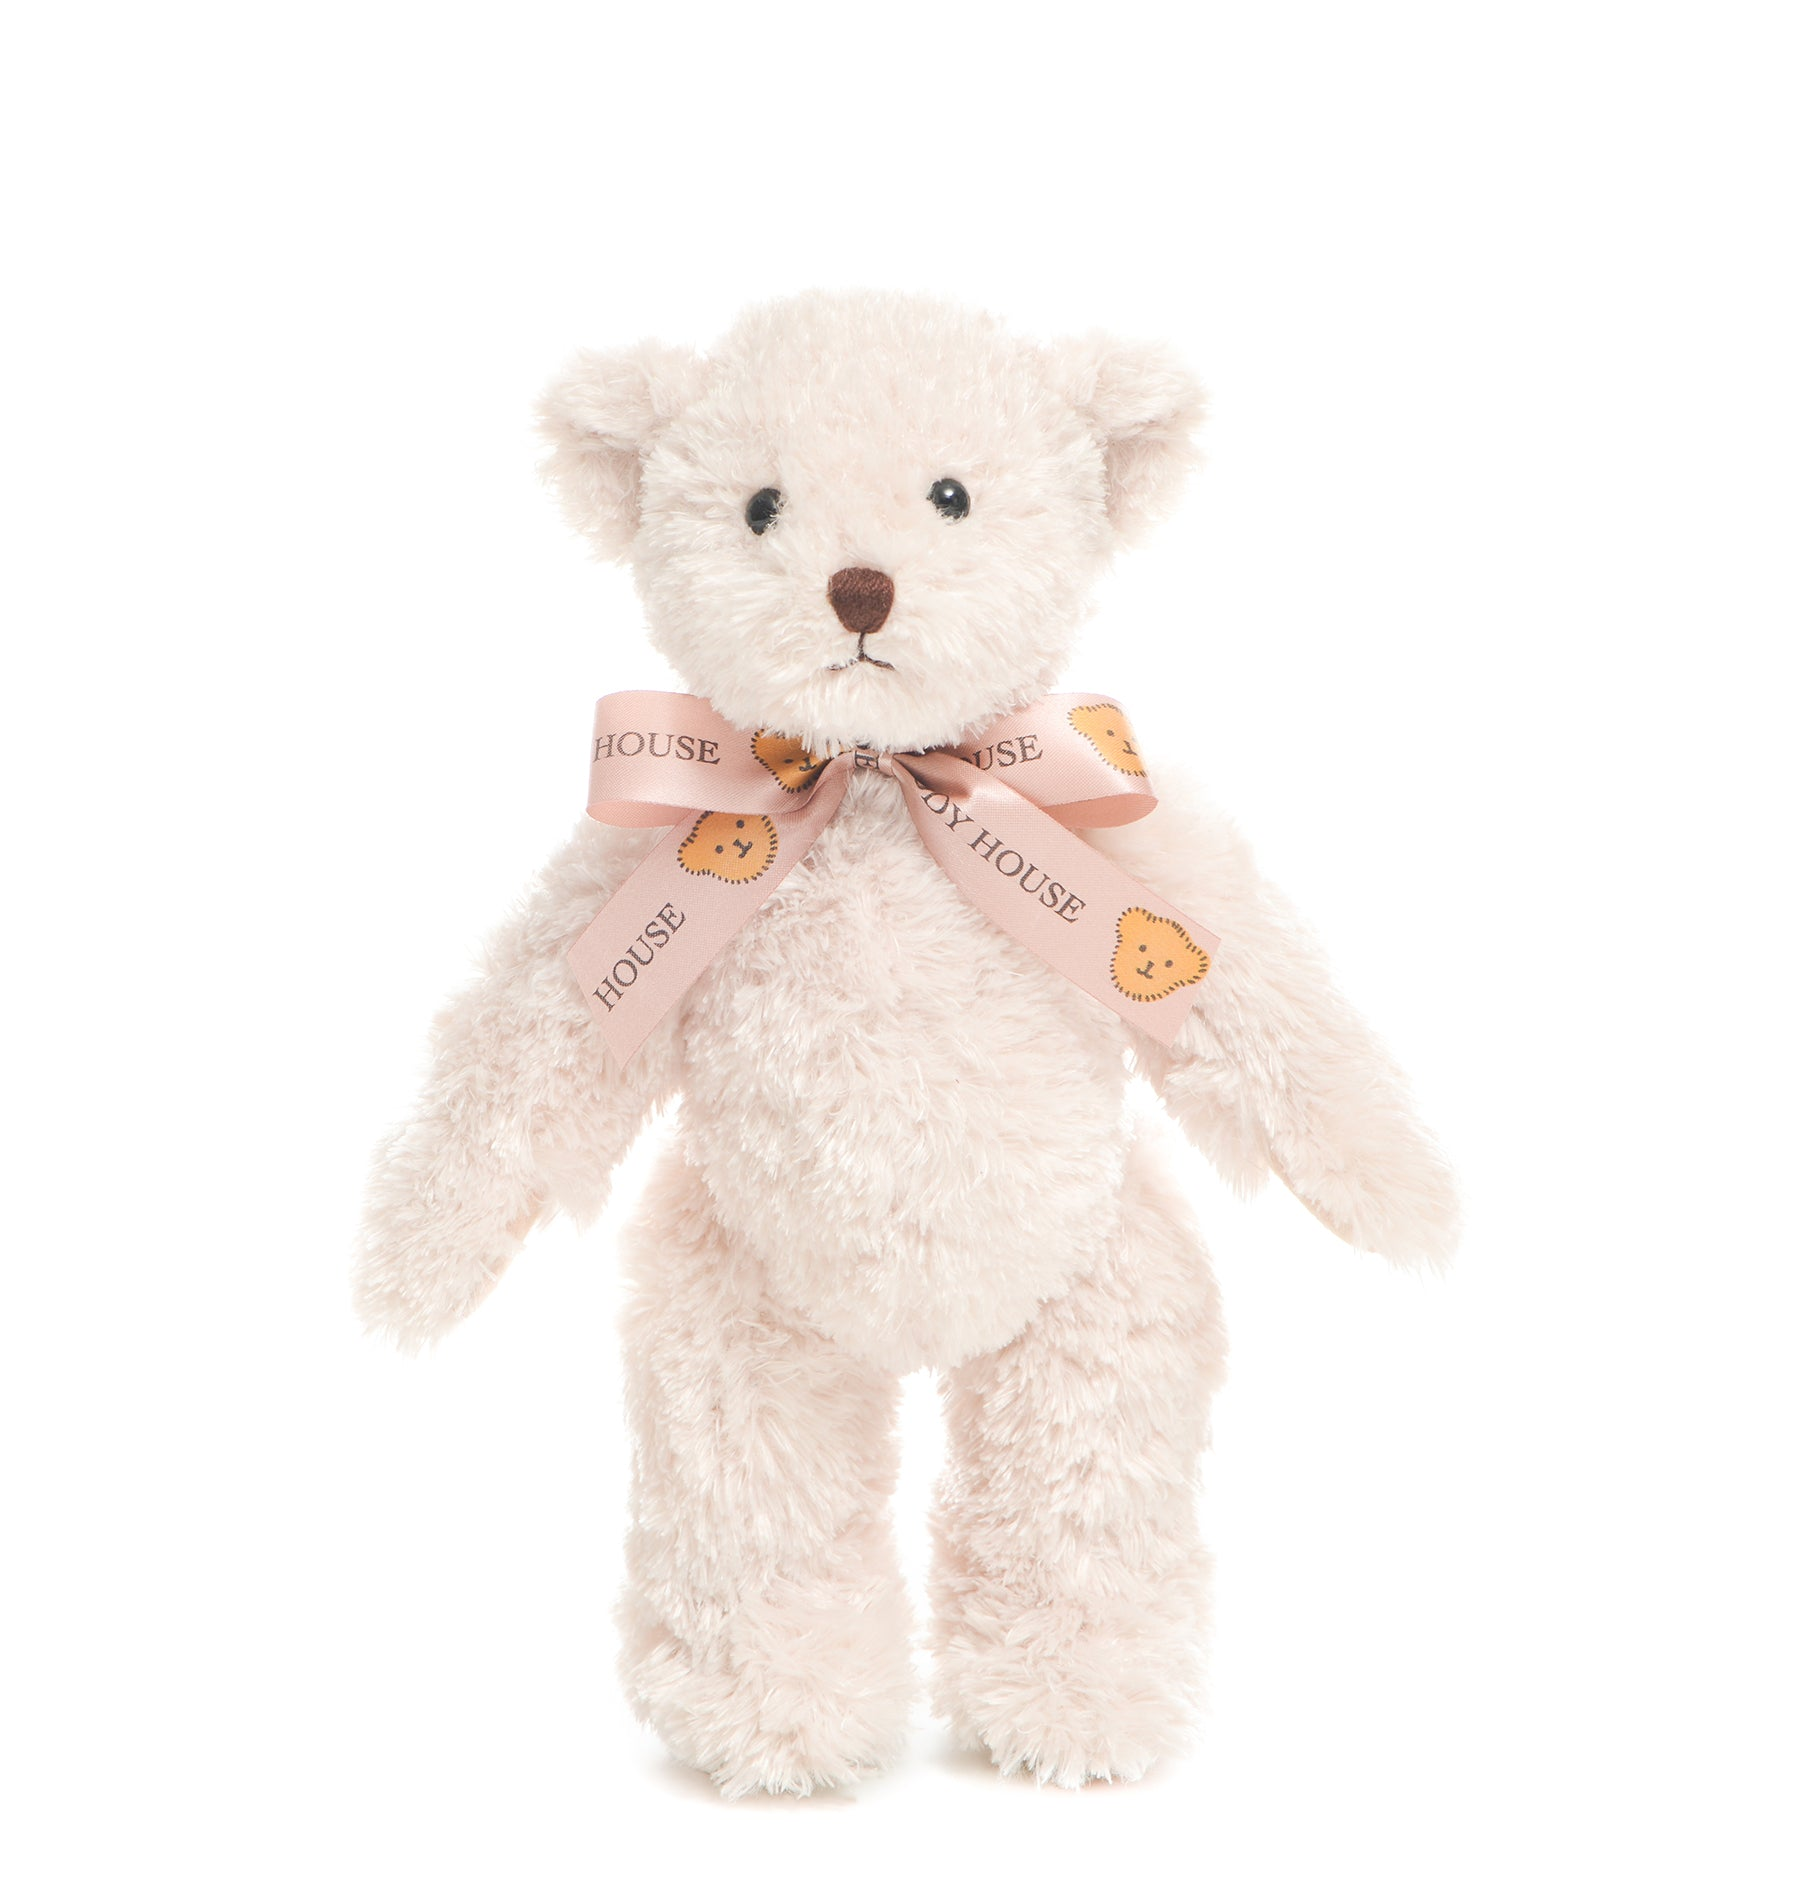 TEDDY HOUSE BONEKA TEDDY BEAR HONEY BEAR 10 INCHI